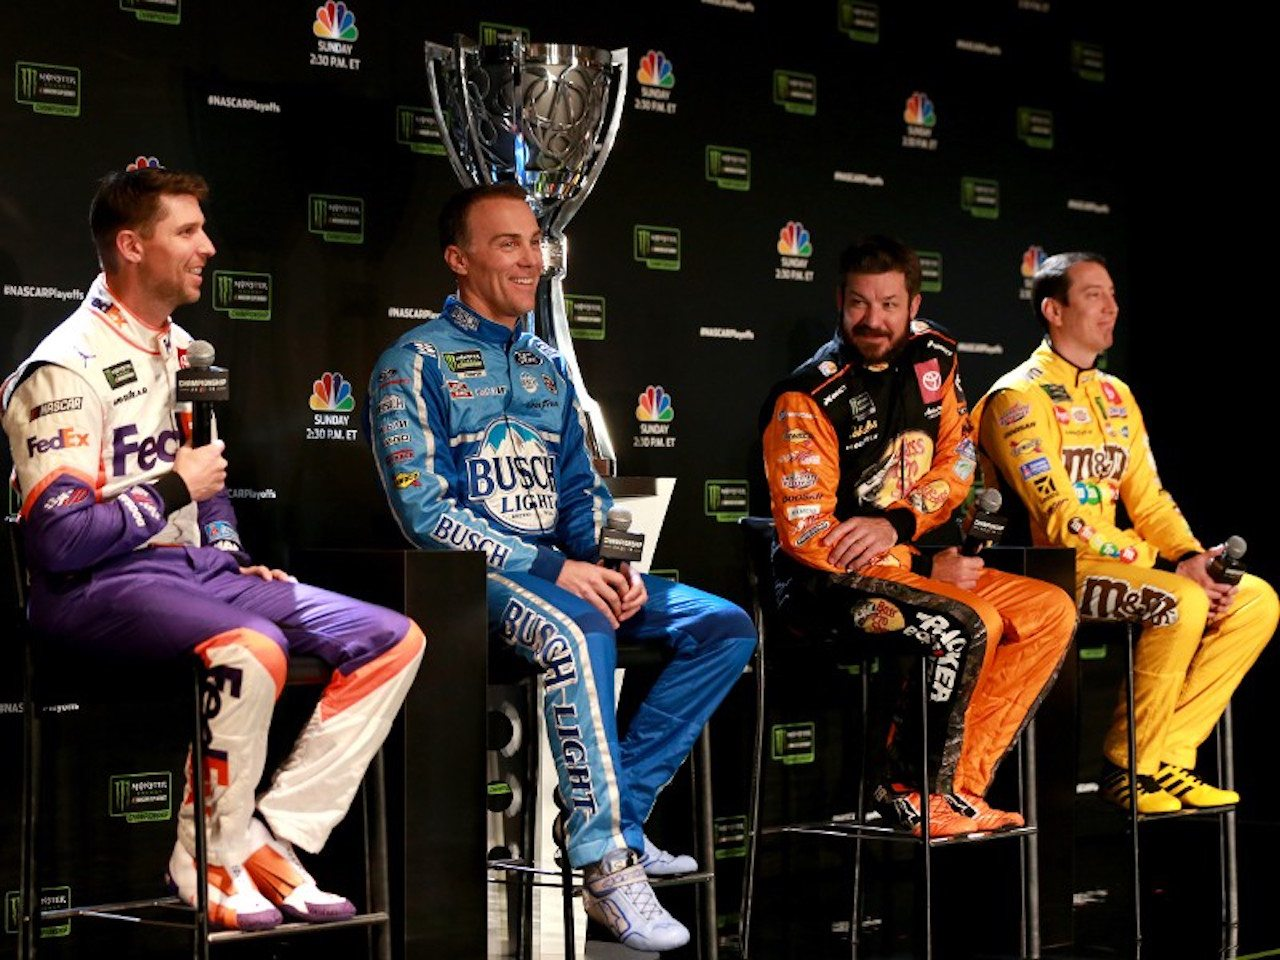 Denny Hamlin, Kevin Harvick, Martin Truex Jr., and Kyle Busch at Homestead-Miami